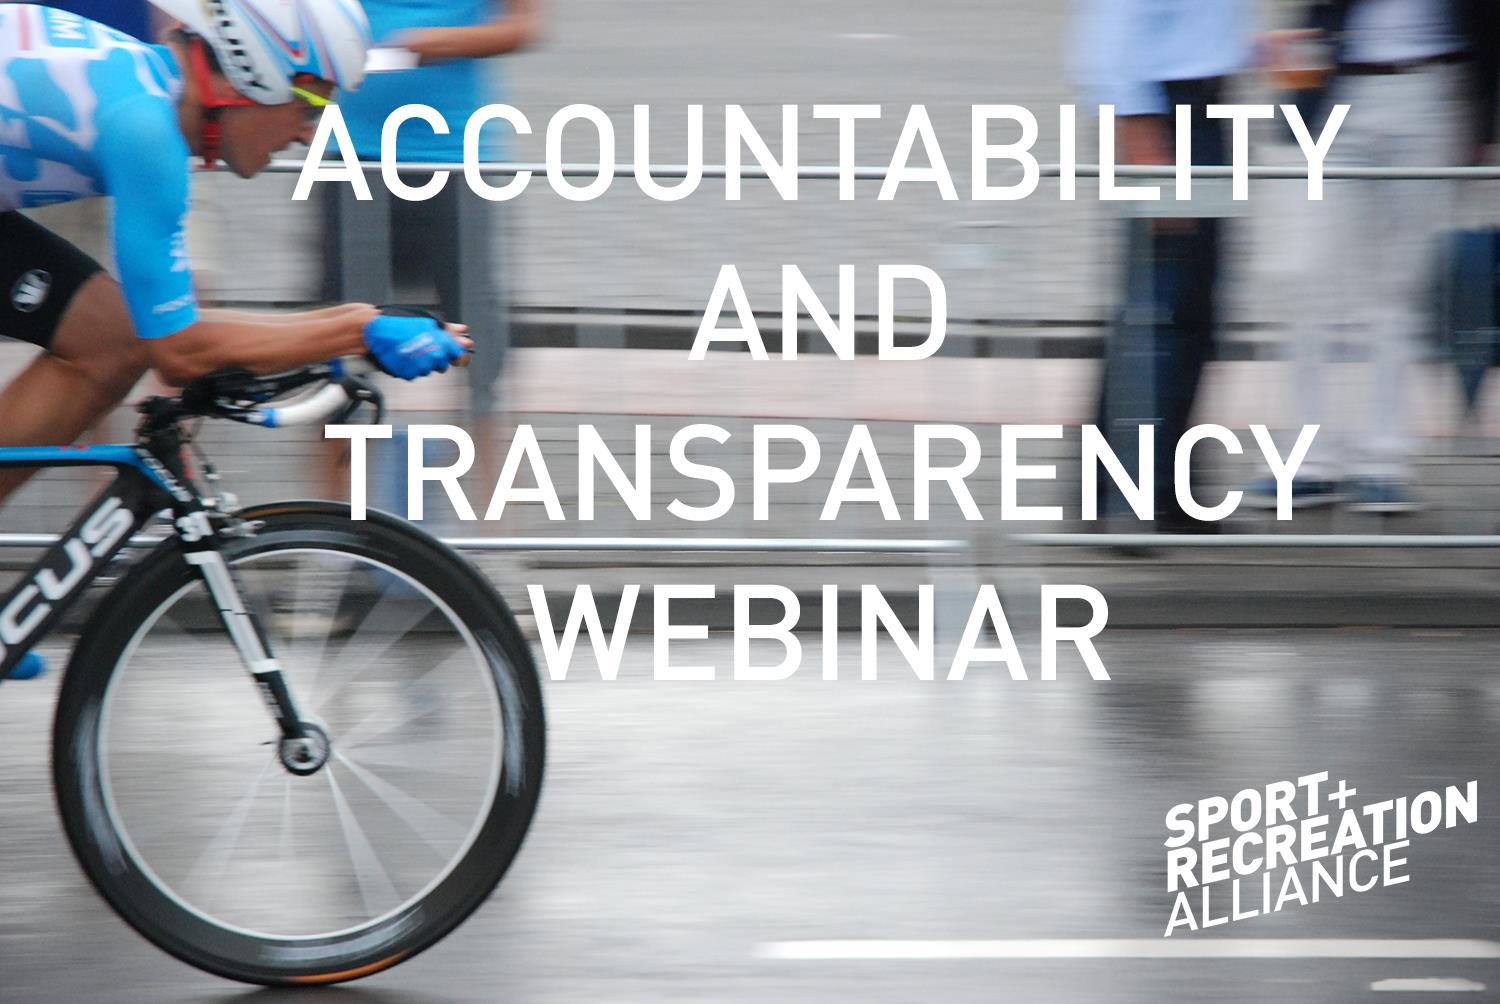 Accountability and transparency ()